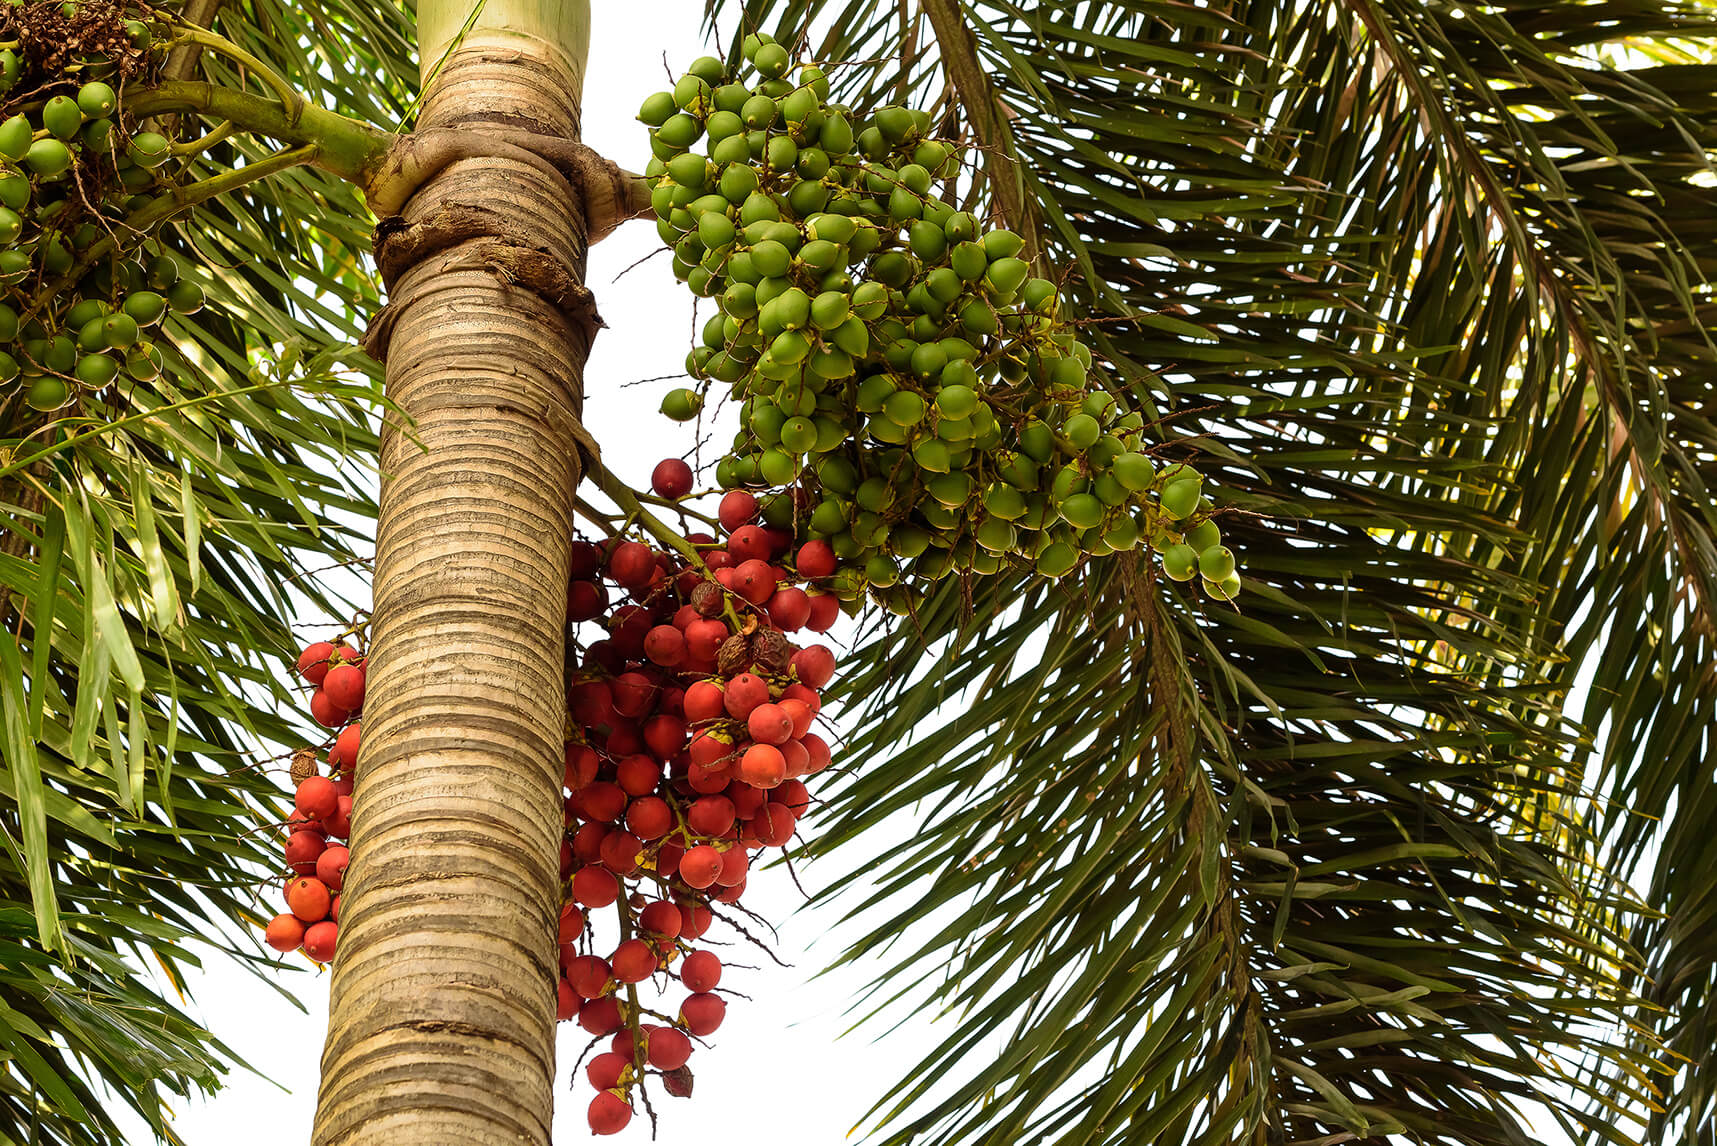 A saw palmetto plant with red, ripe berries and green, unripe berries.